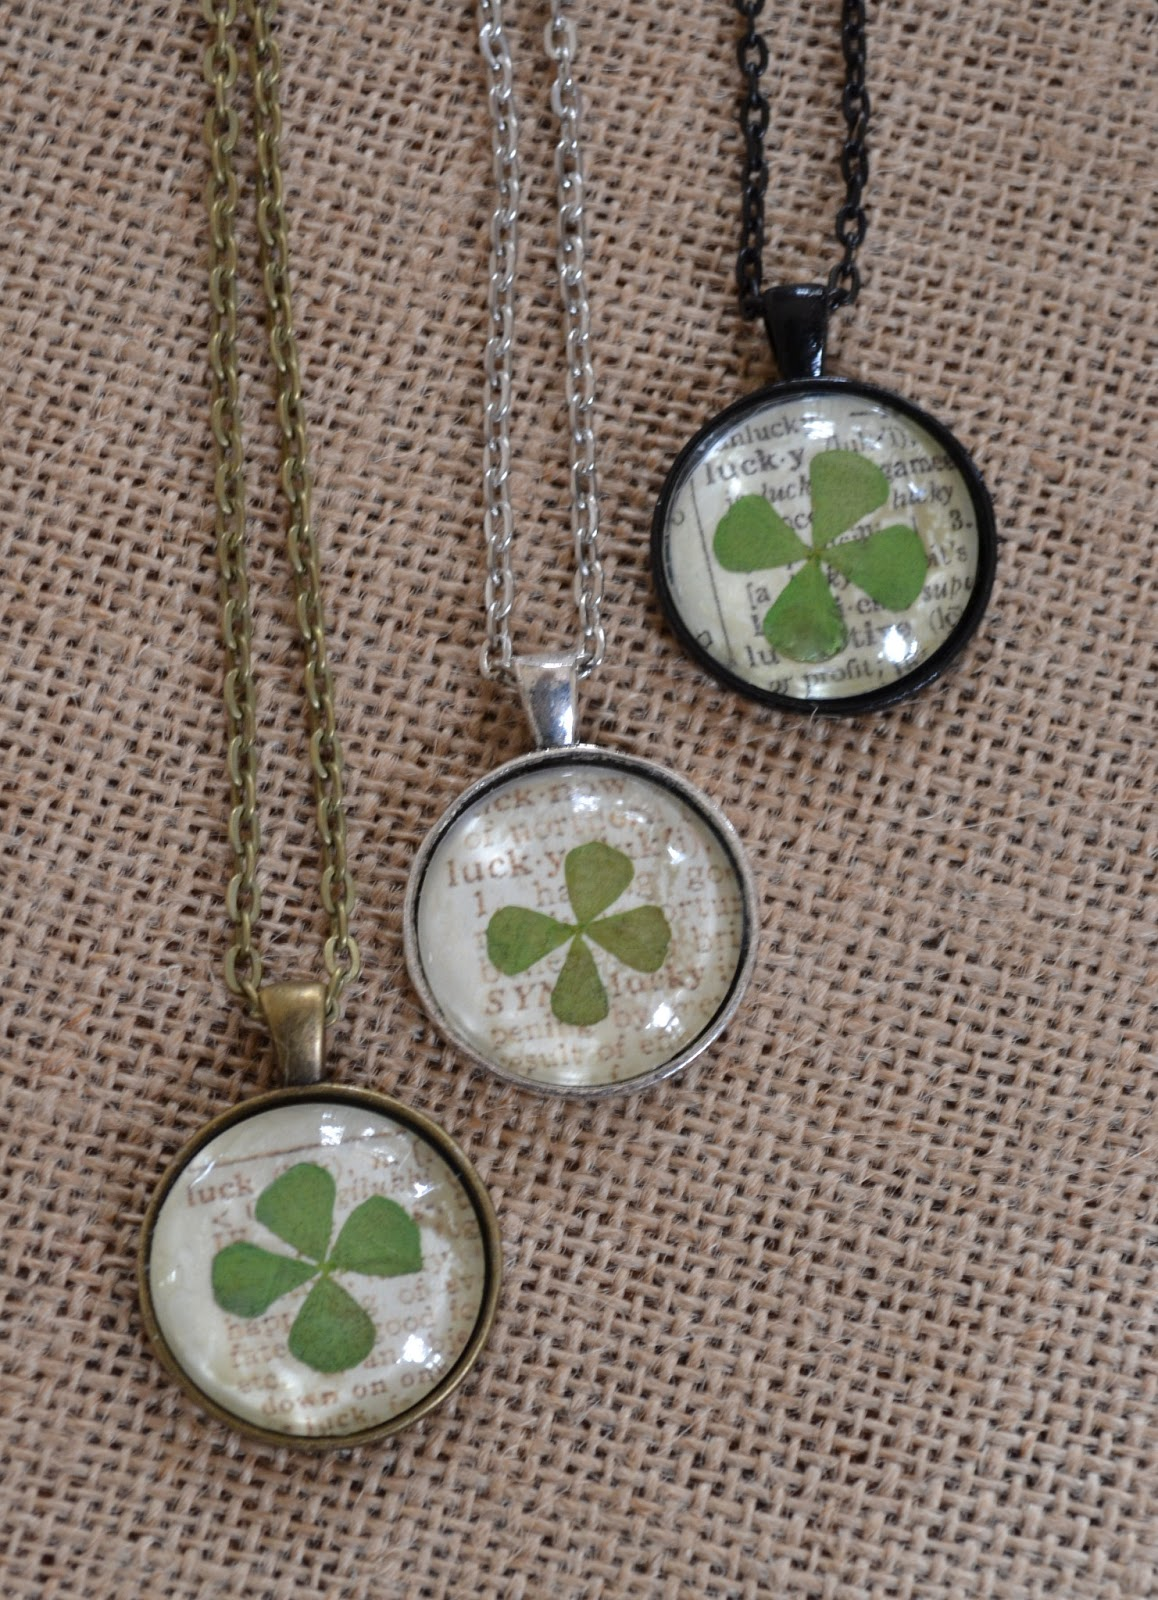 St. Patrick's Day Crafts - Lucky clover pendant